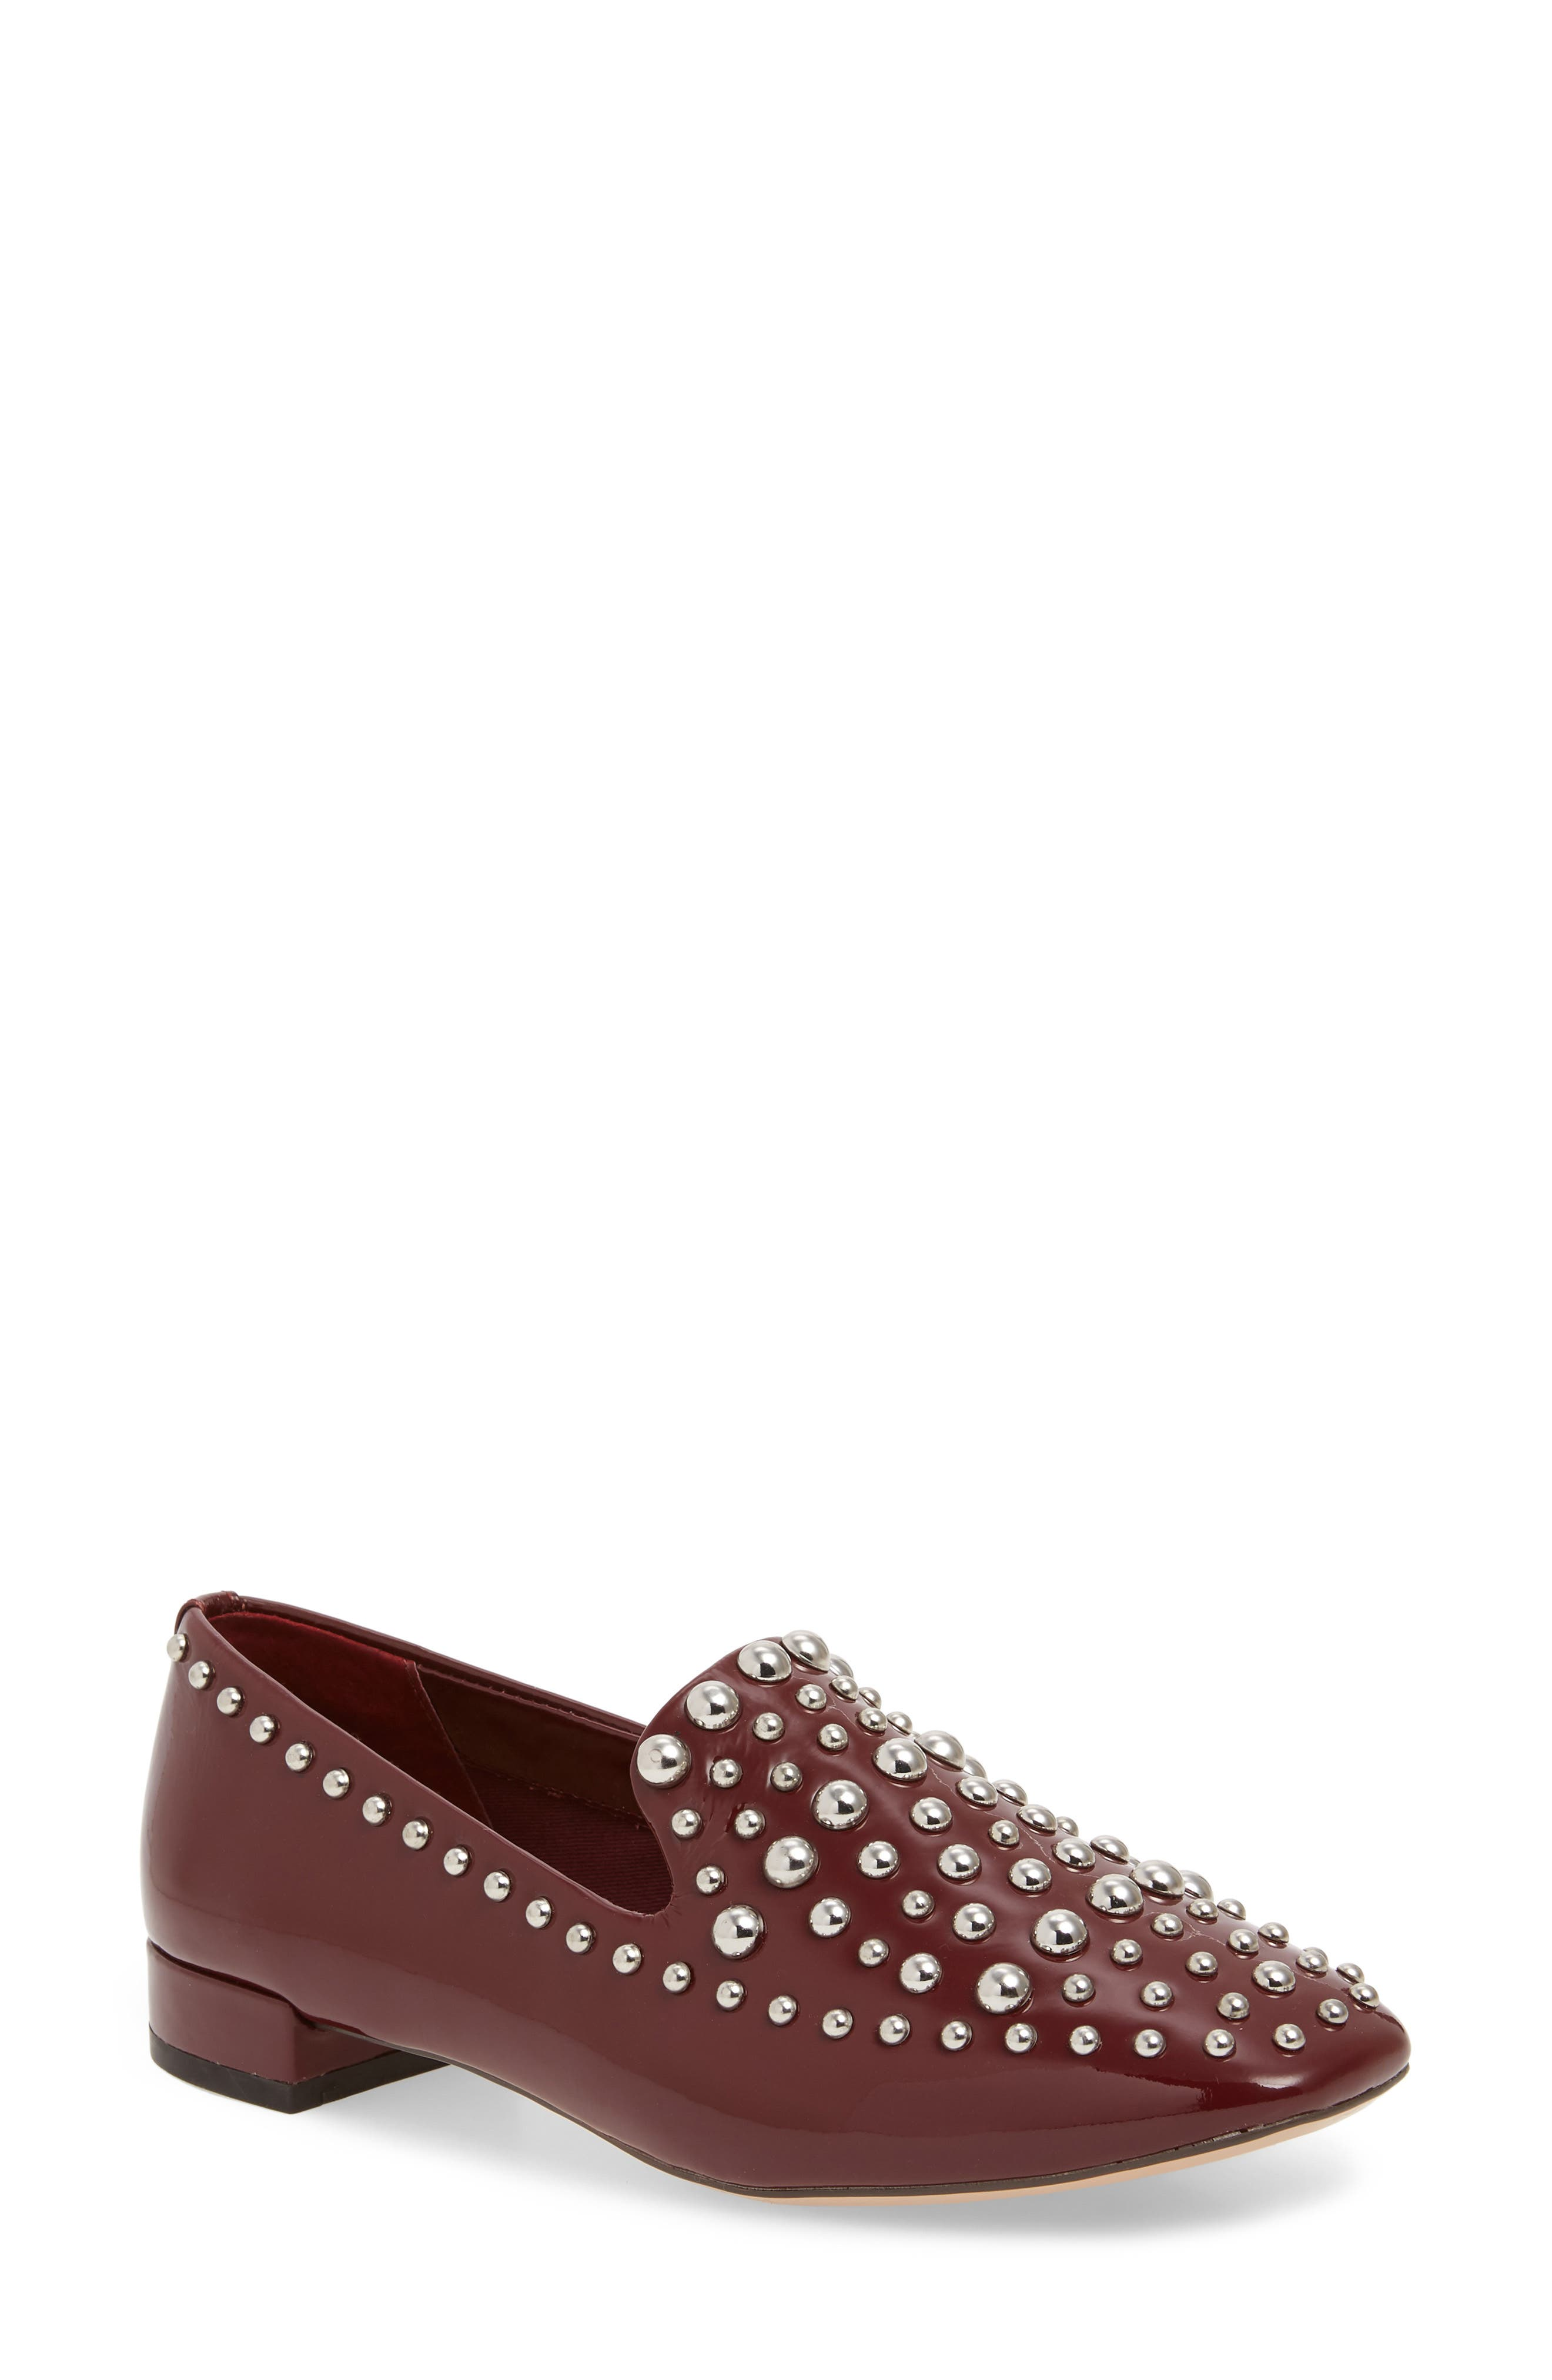 Kaylee Loafer,                             Main thumbnail 1, color,                             BERRY PATENT LEATHER